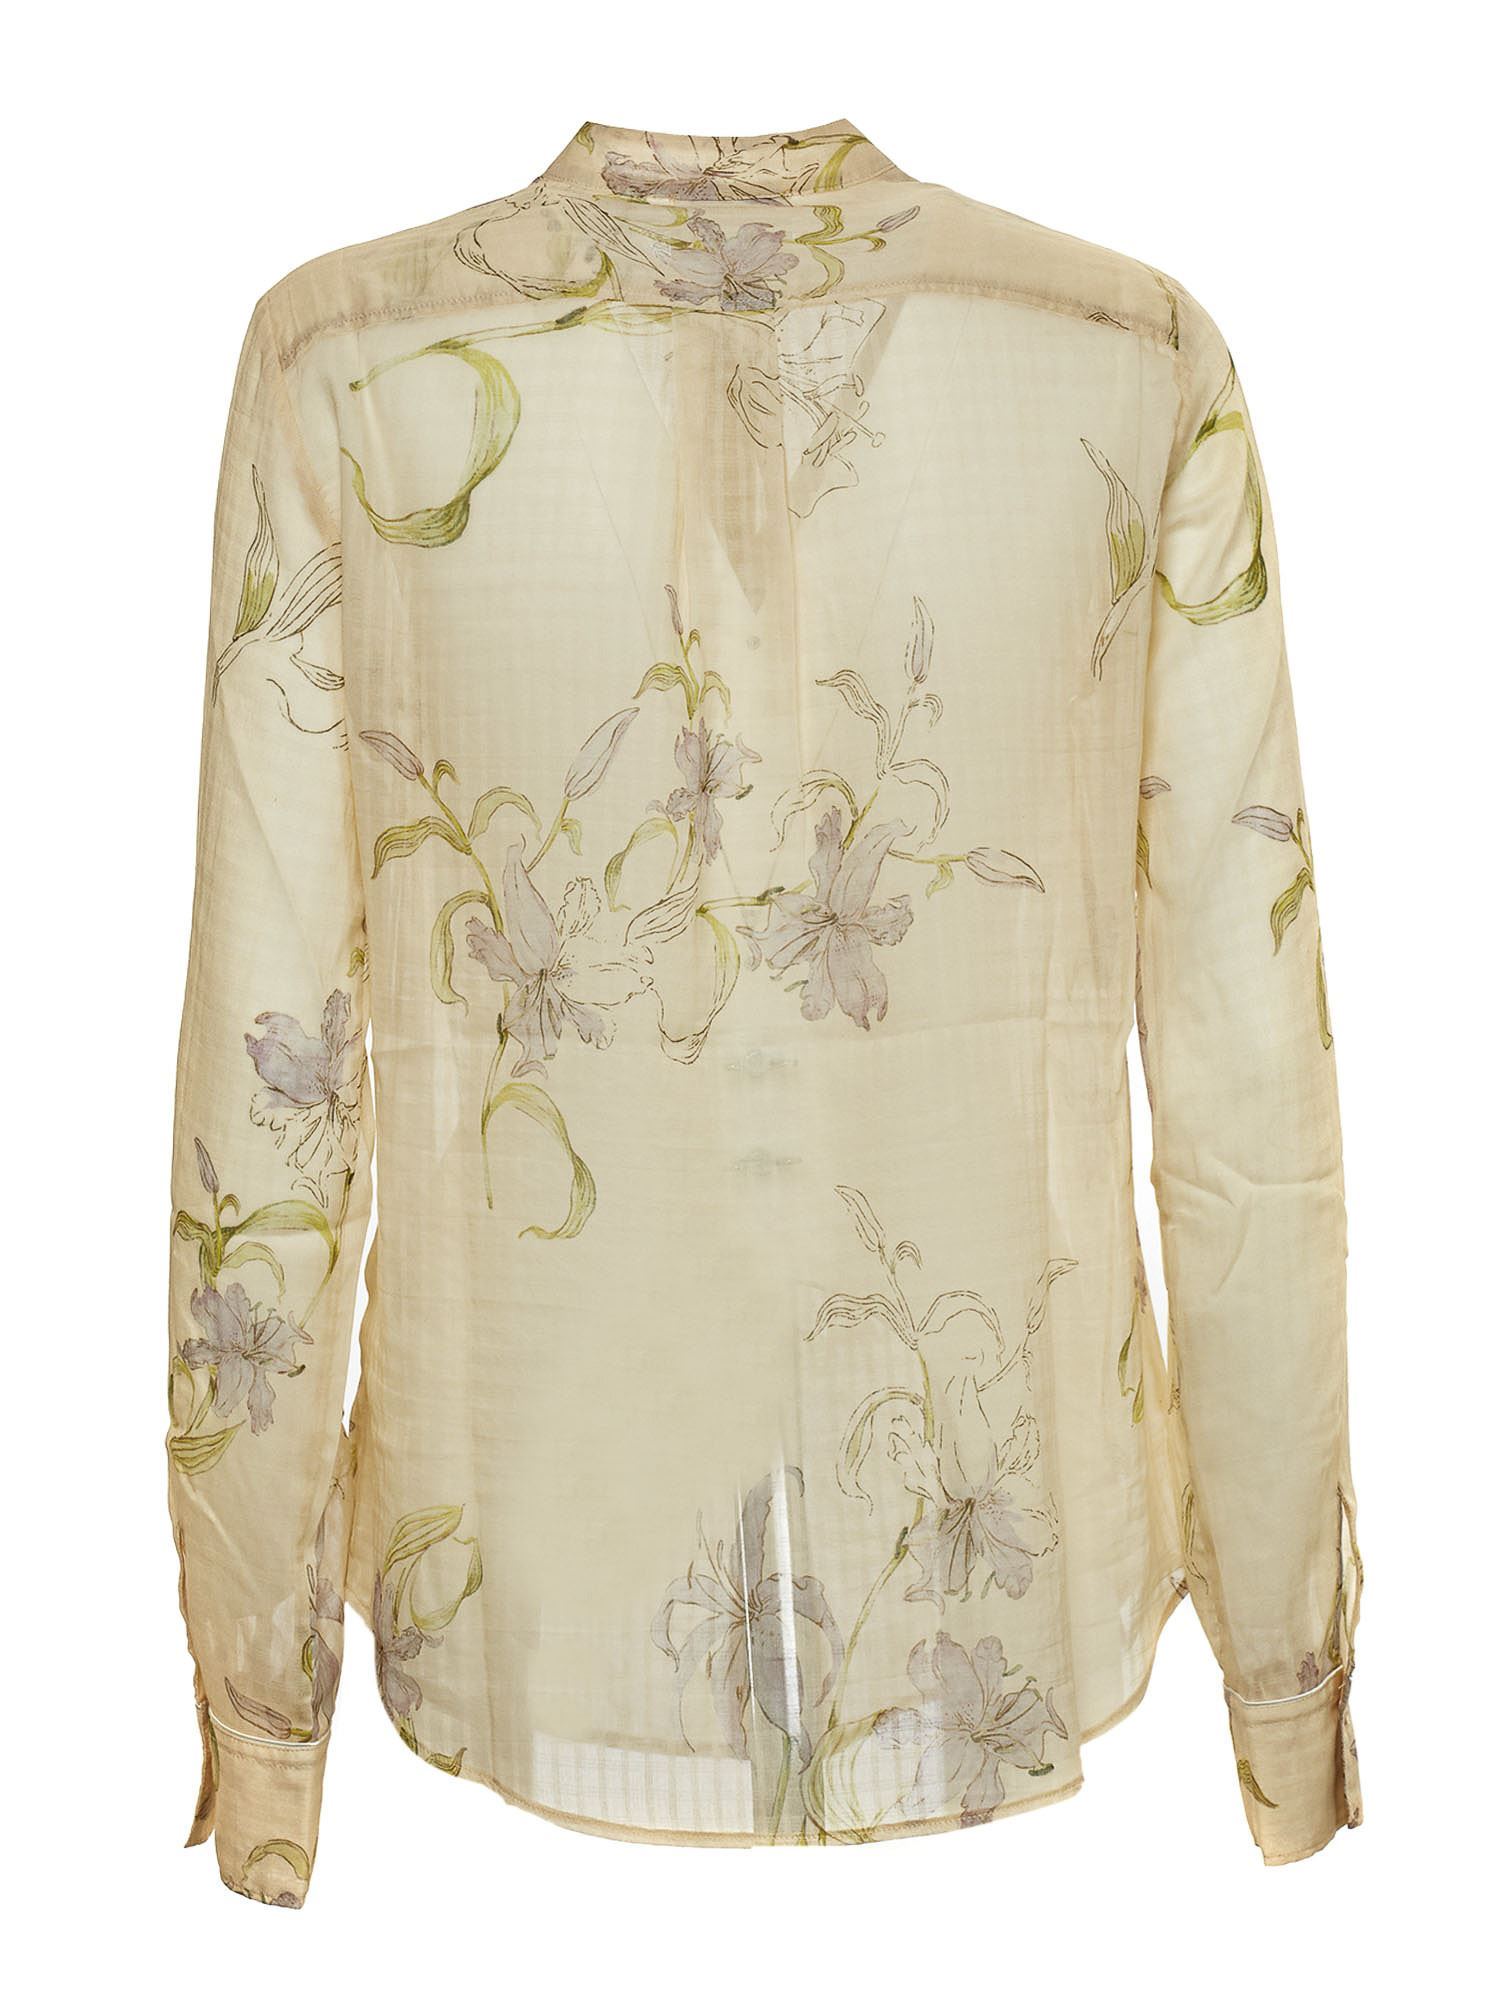 FORTE FORTE Silks FLORAL SHIRT IN PEACH COLOR